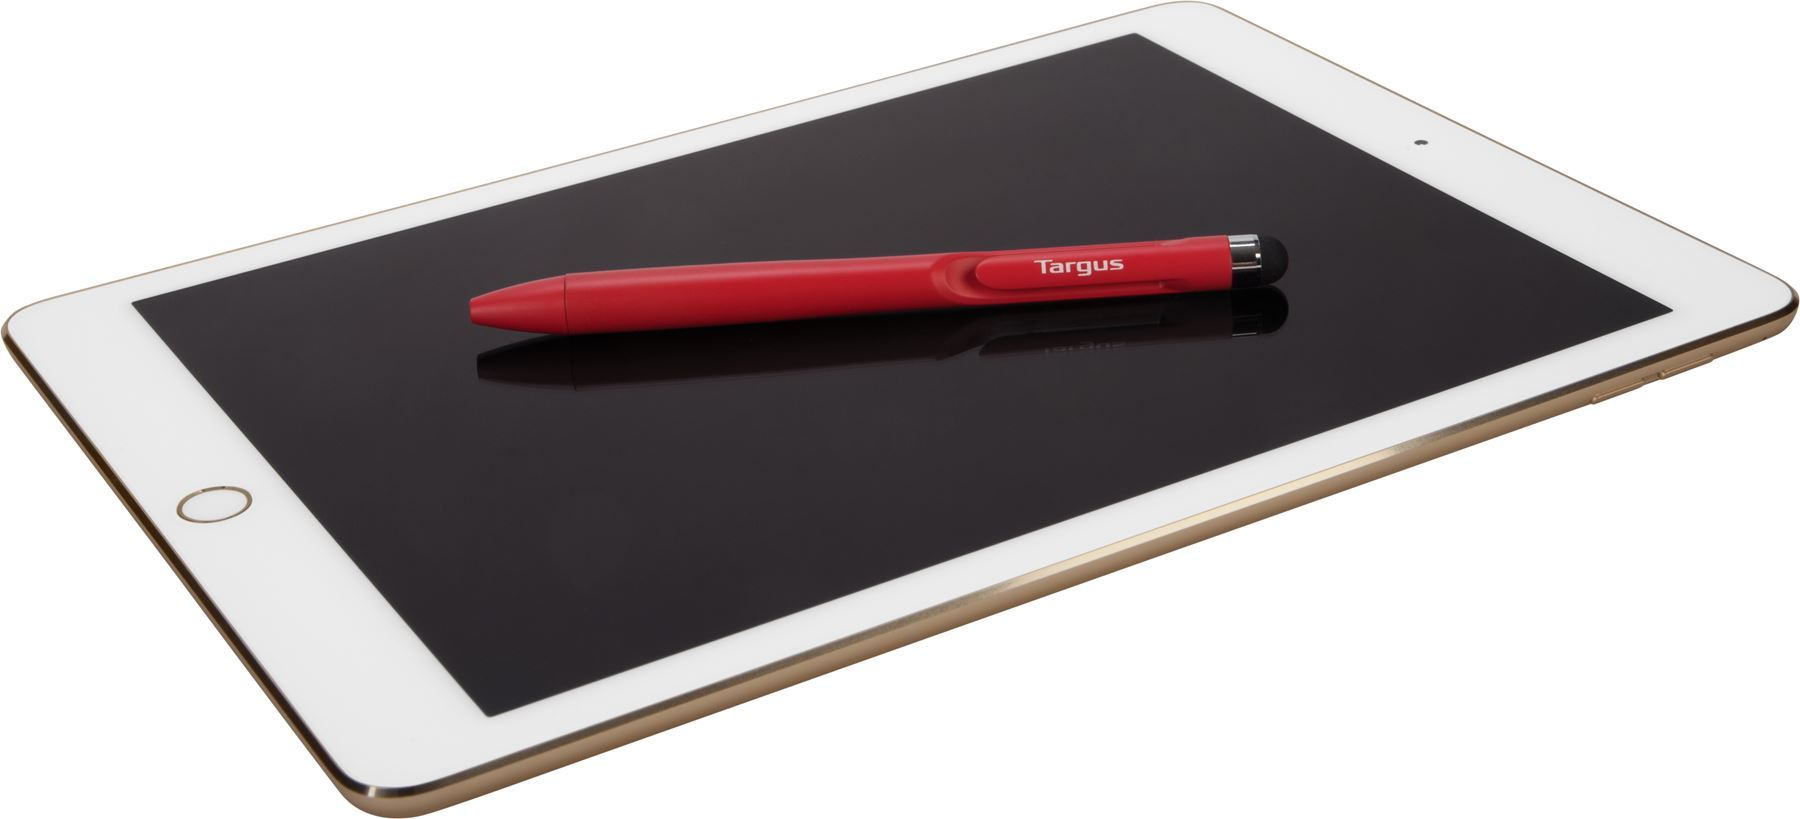 Picture of Targus 2 in 1 Pen Stylus for all Touchscreen Devices - Red